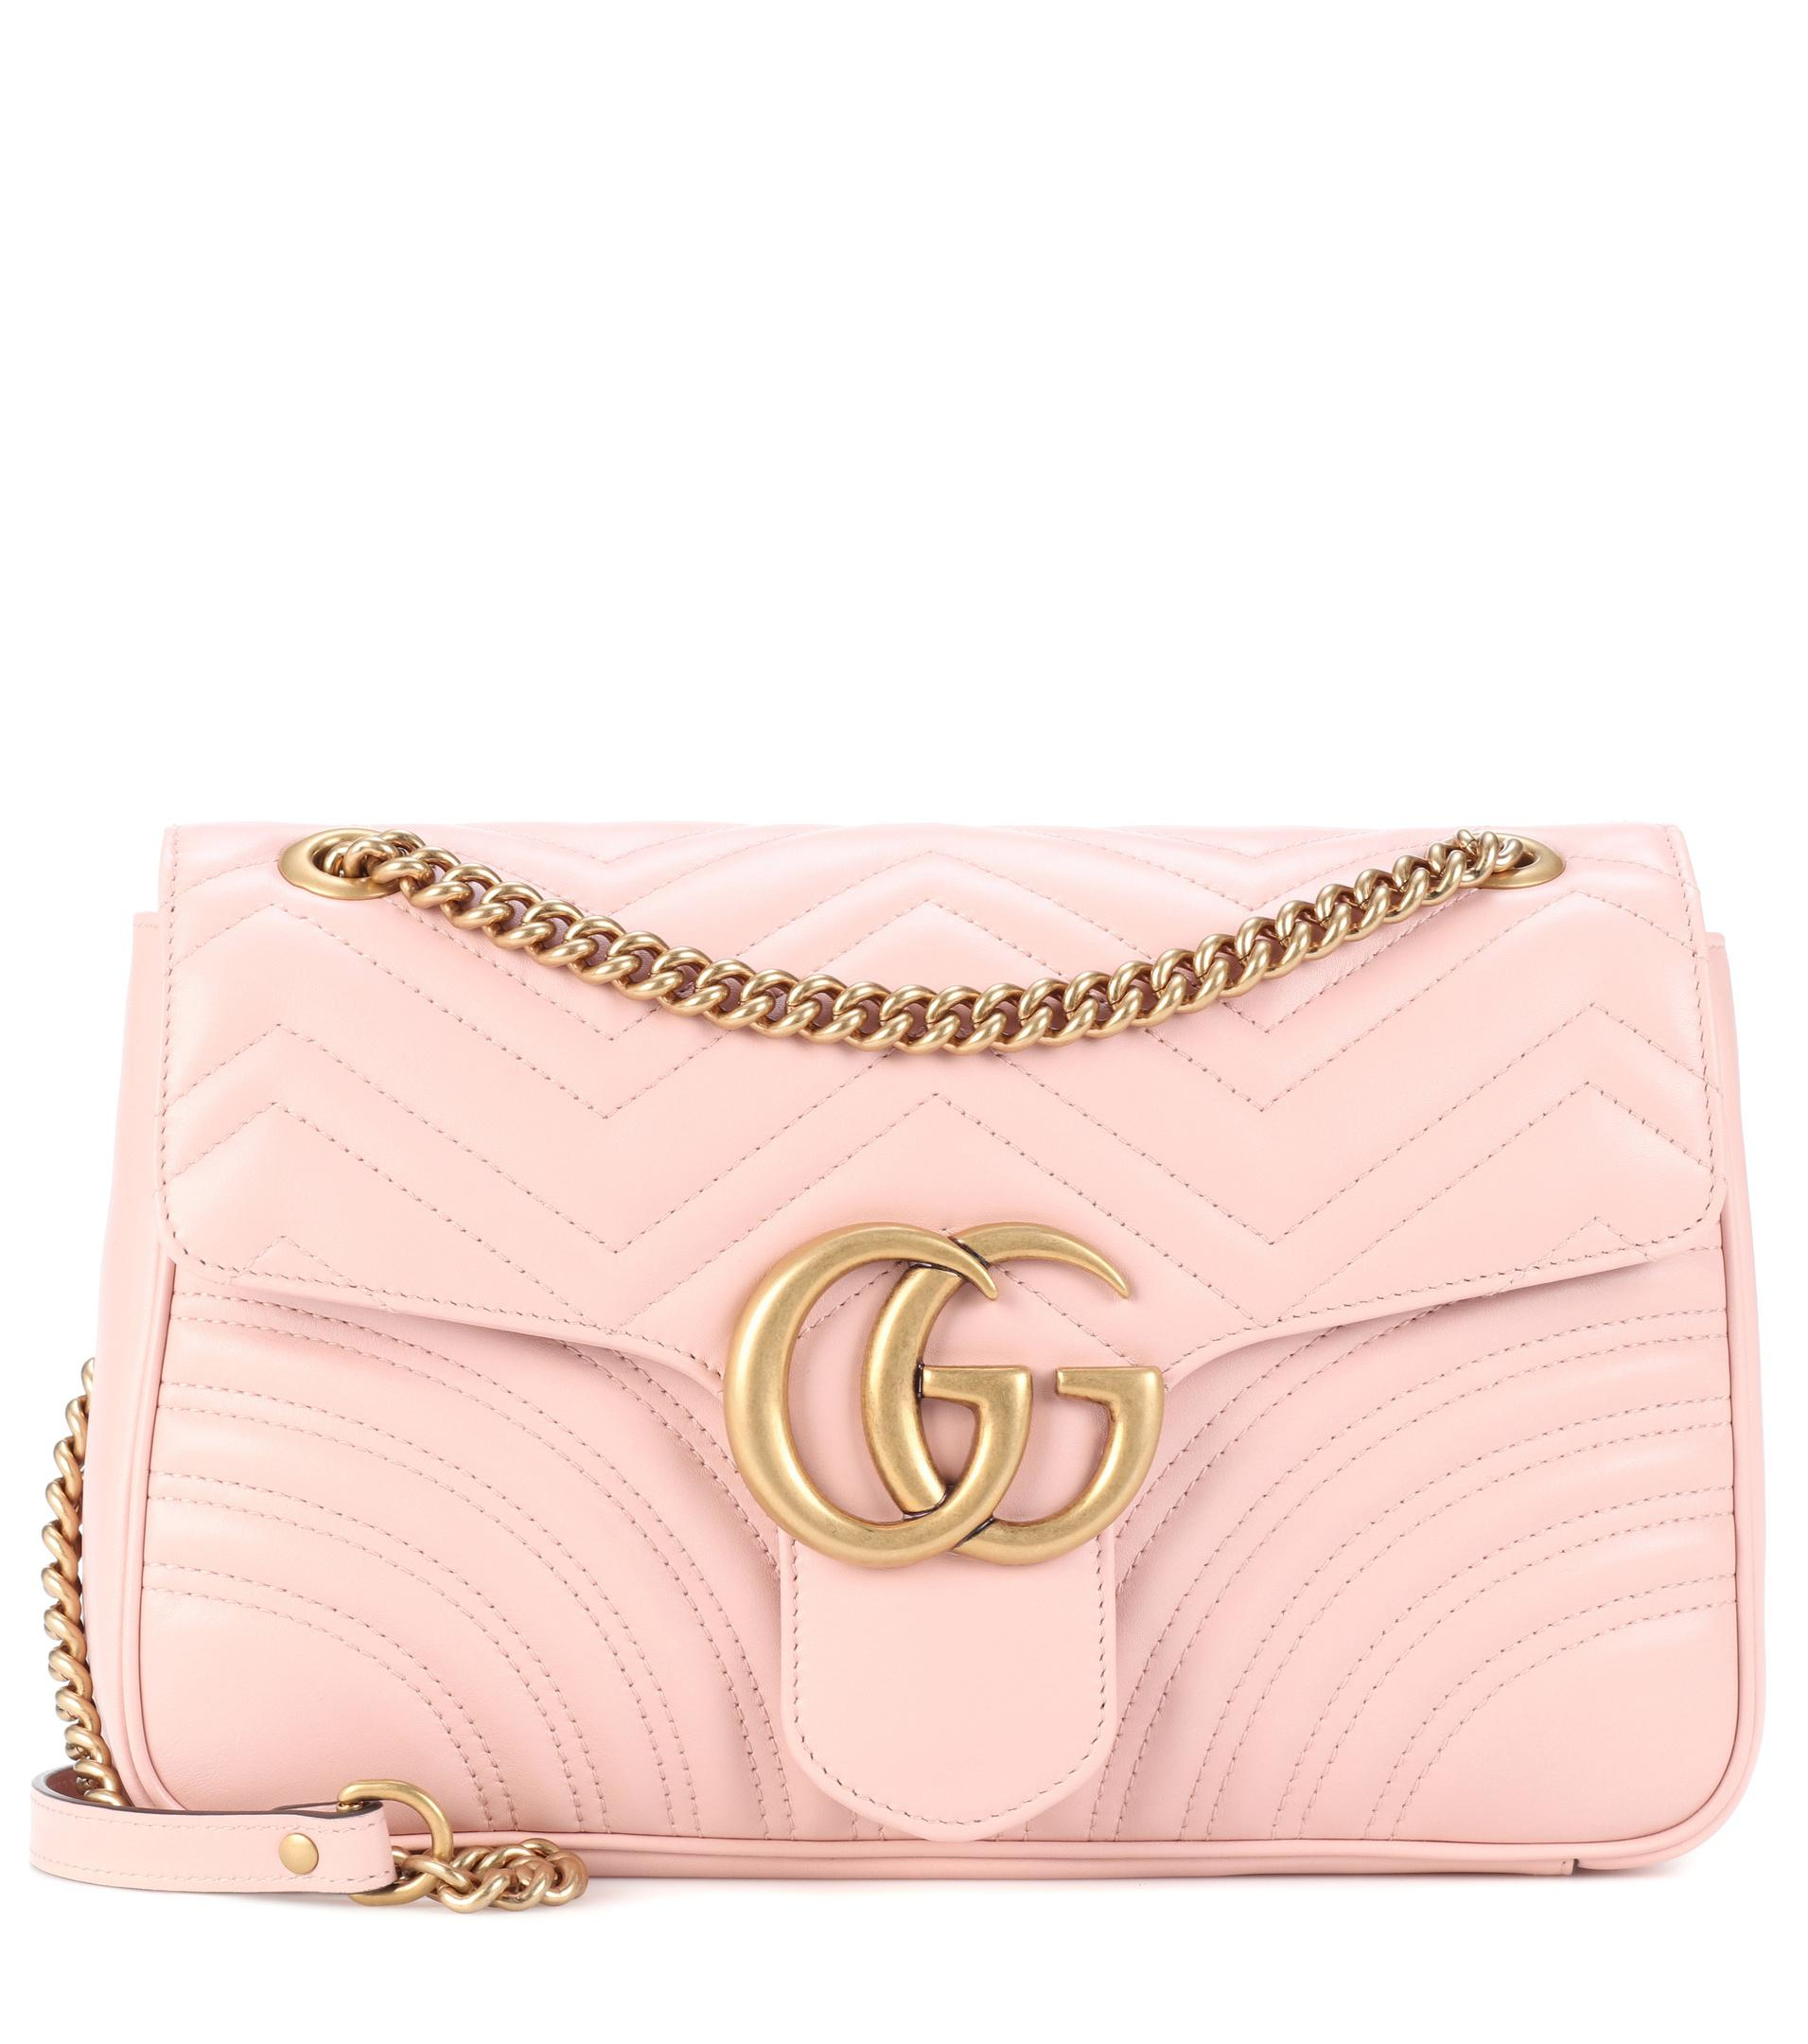 0bfbe6a600ff Gucci Gg Marmont Medium Matelassé Leather Shoulder Bag in Pink - Lyst